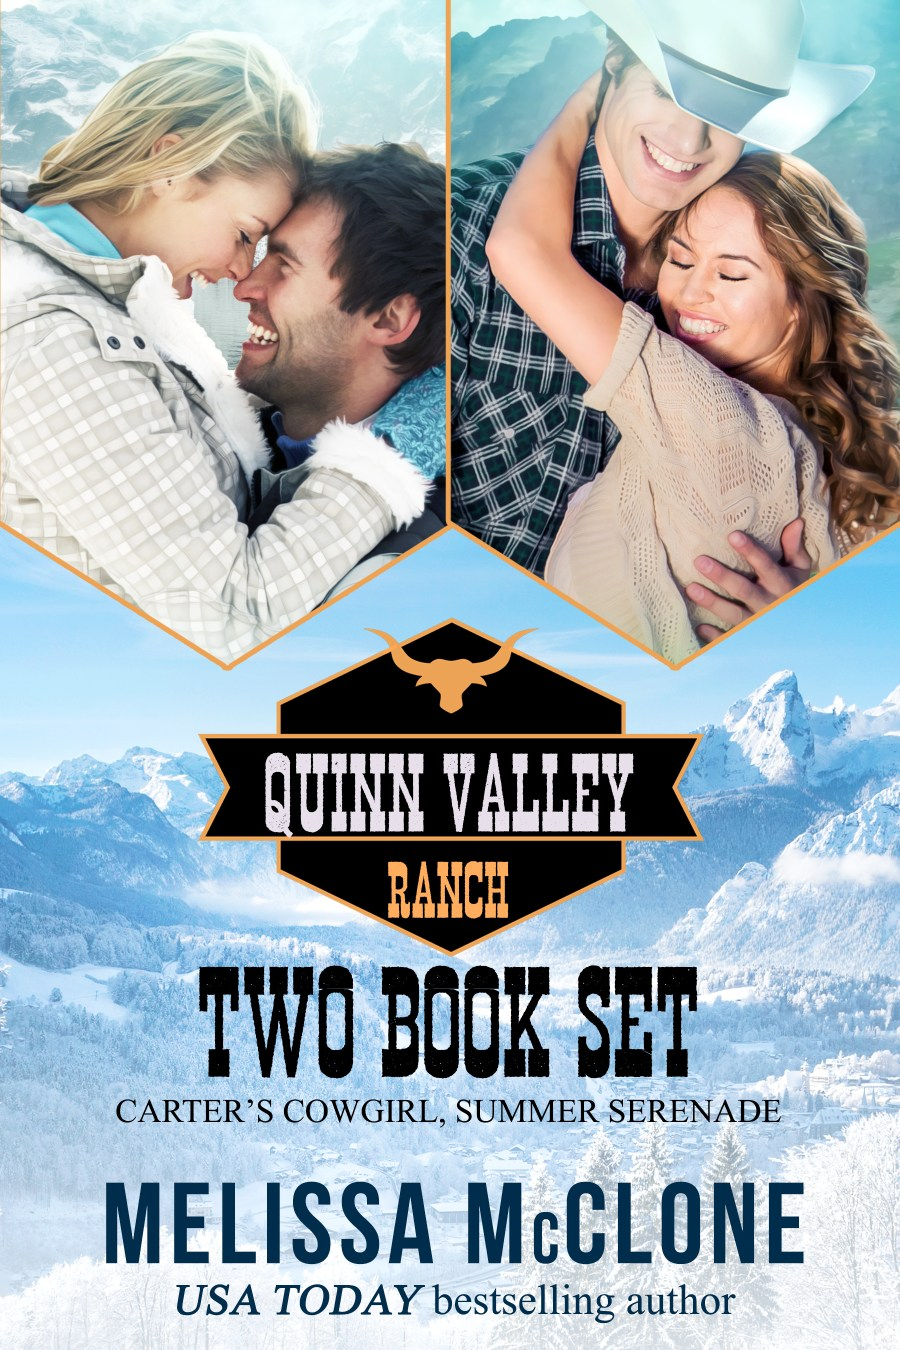 Quinn Valley Ranch Two Book Set